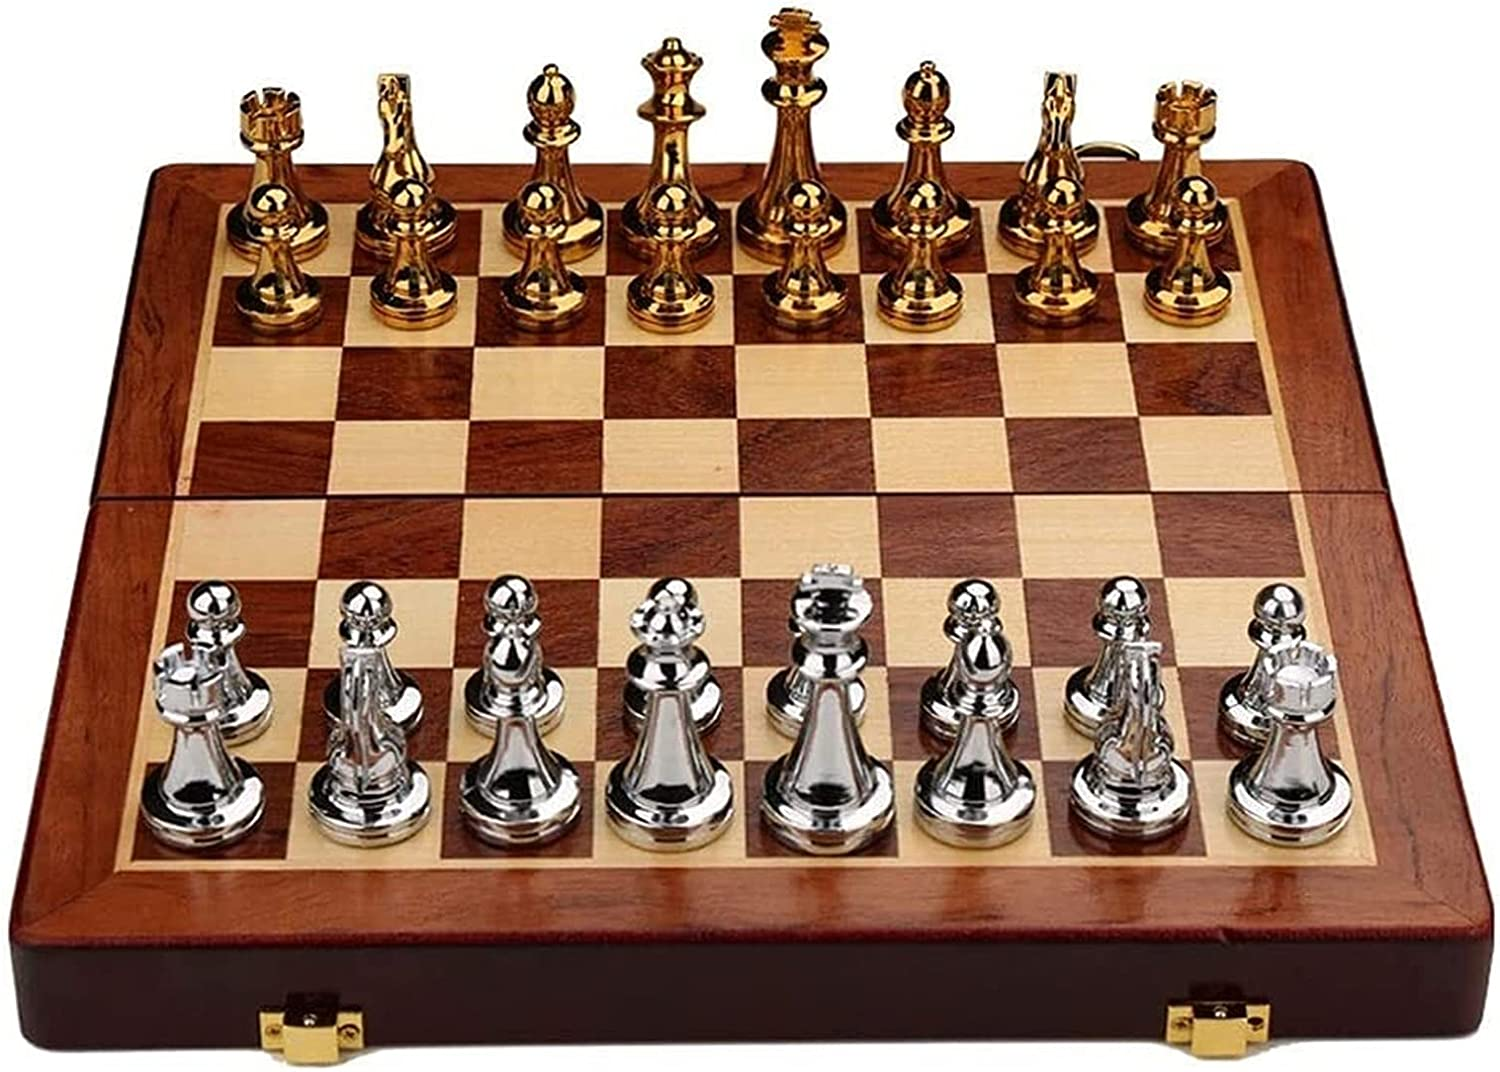 MTCWD Max 73% OFF Chess Wooden Set Folding with Manufacturer direct delivery Board Ches